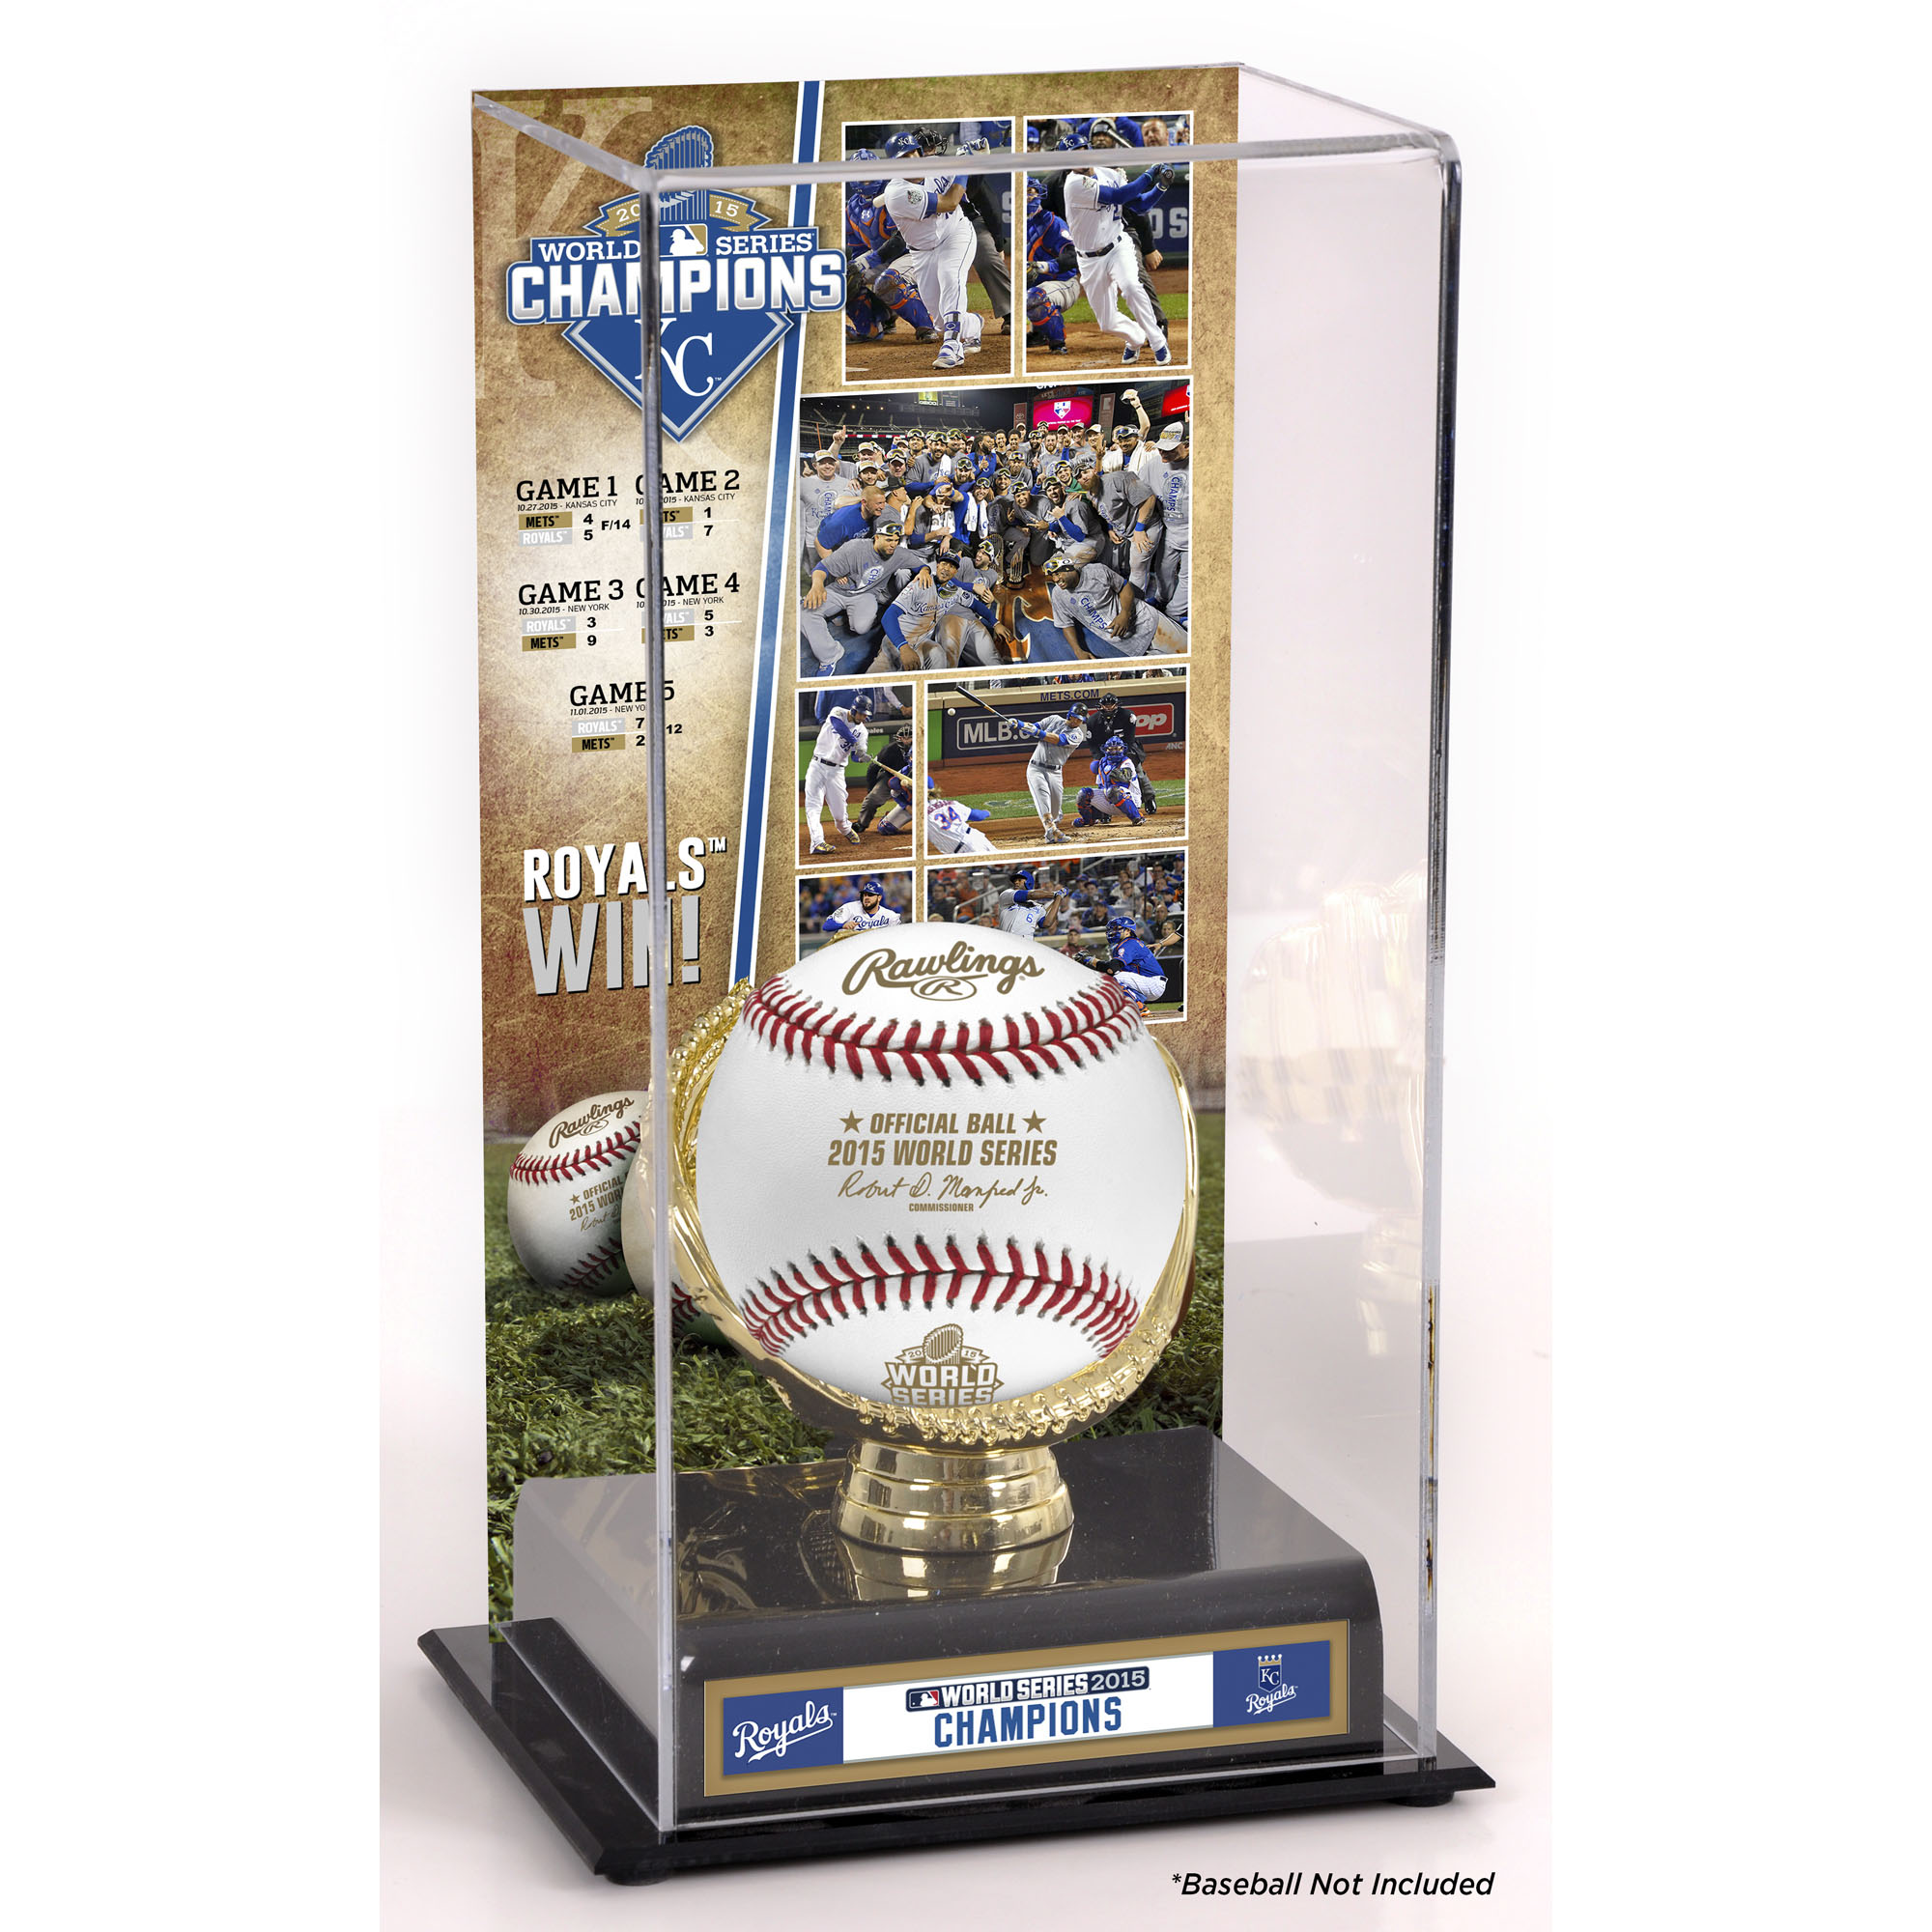 Kansas City Royals Fanatics Authentic 2015 MLB World Series Champions Gold Glove Display Case with Image - No Size